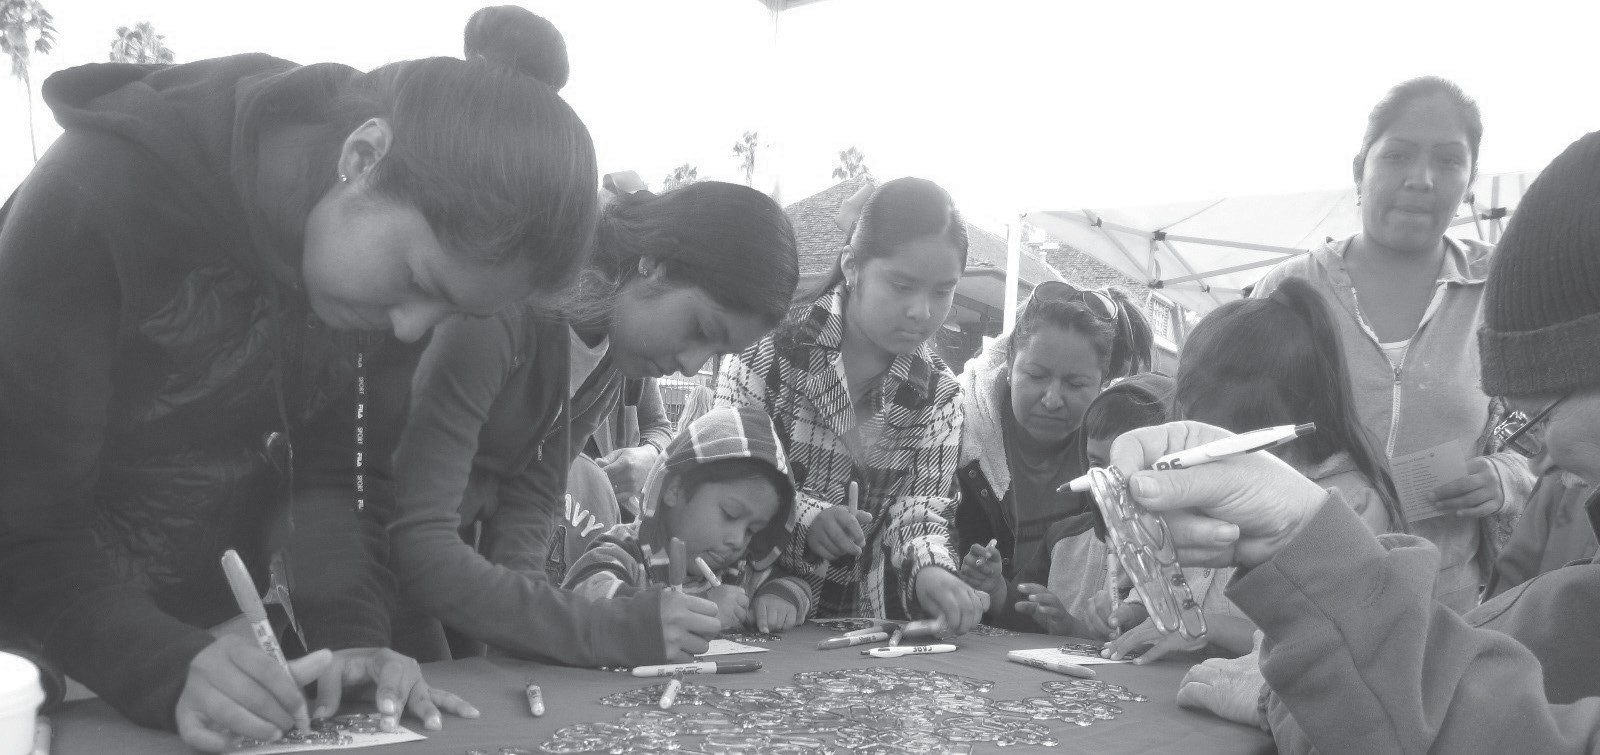 Escondido Union School District's Peace Fest included art projects for the students and families at Grape Day Park.